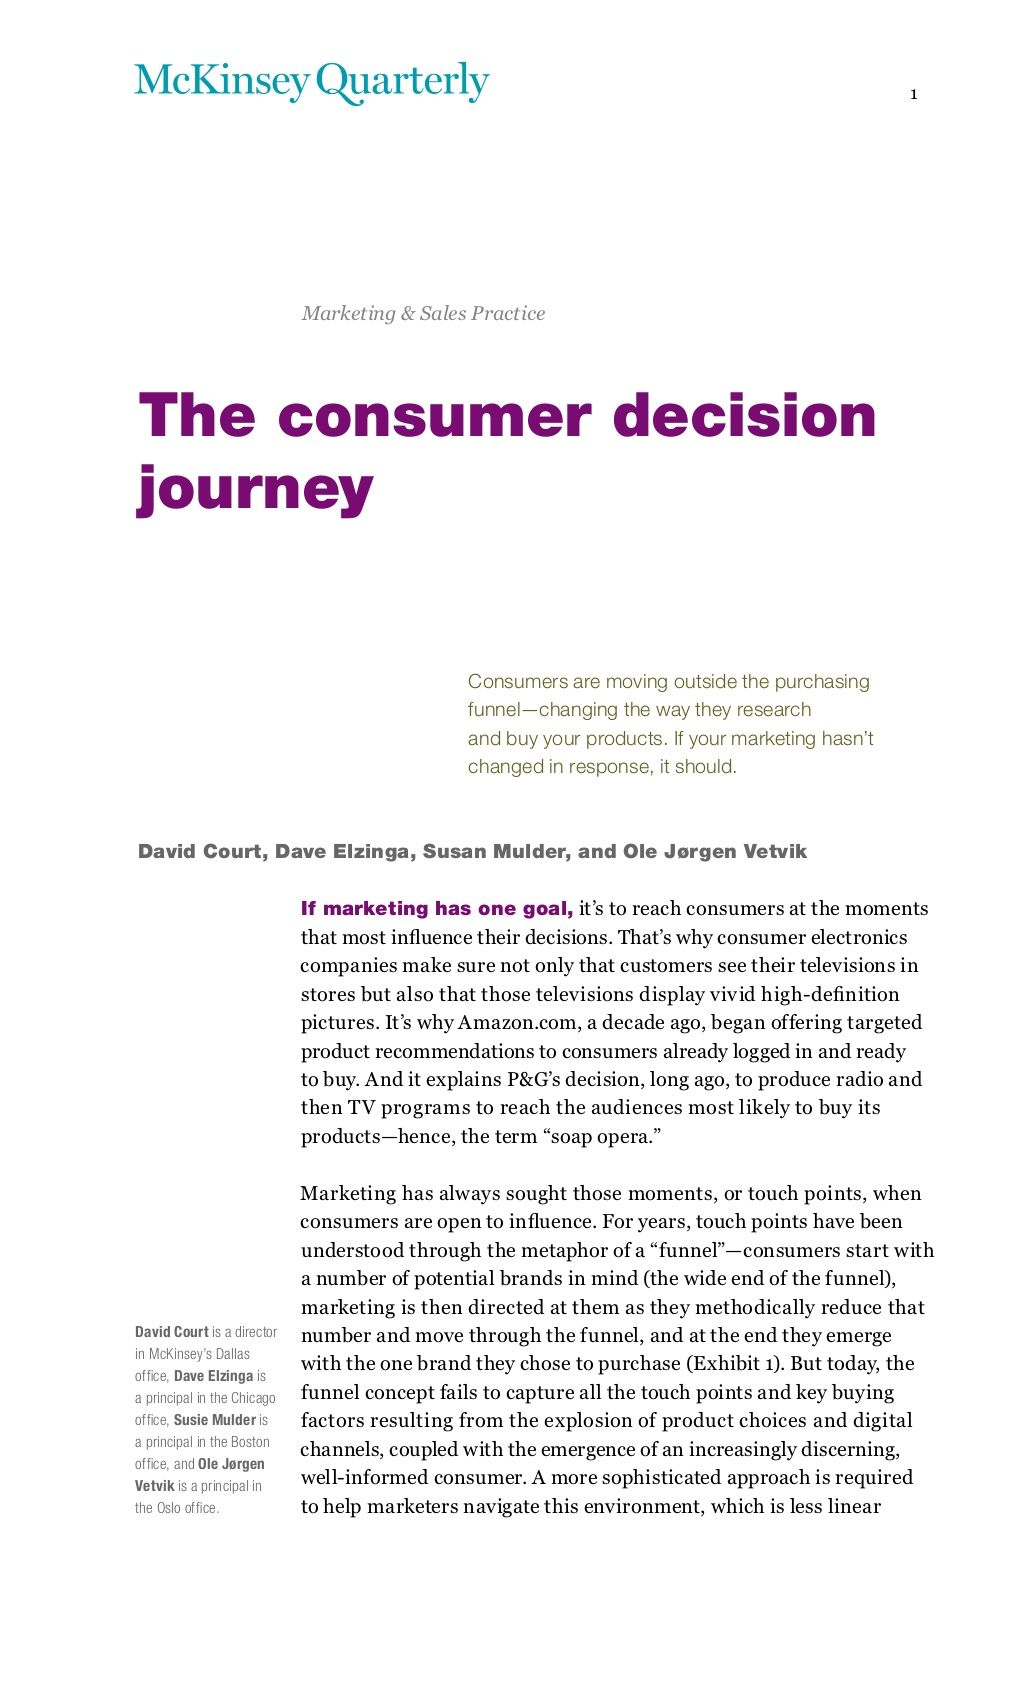 mckinsey-theconsumer-decision-journey by Fred Zimny via Slideshare